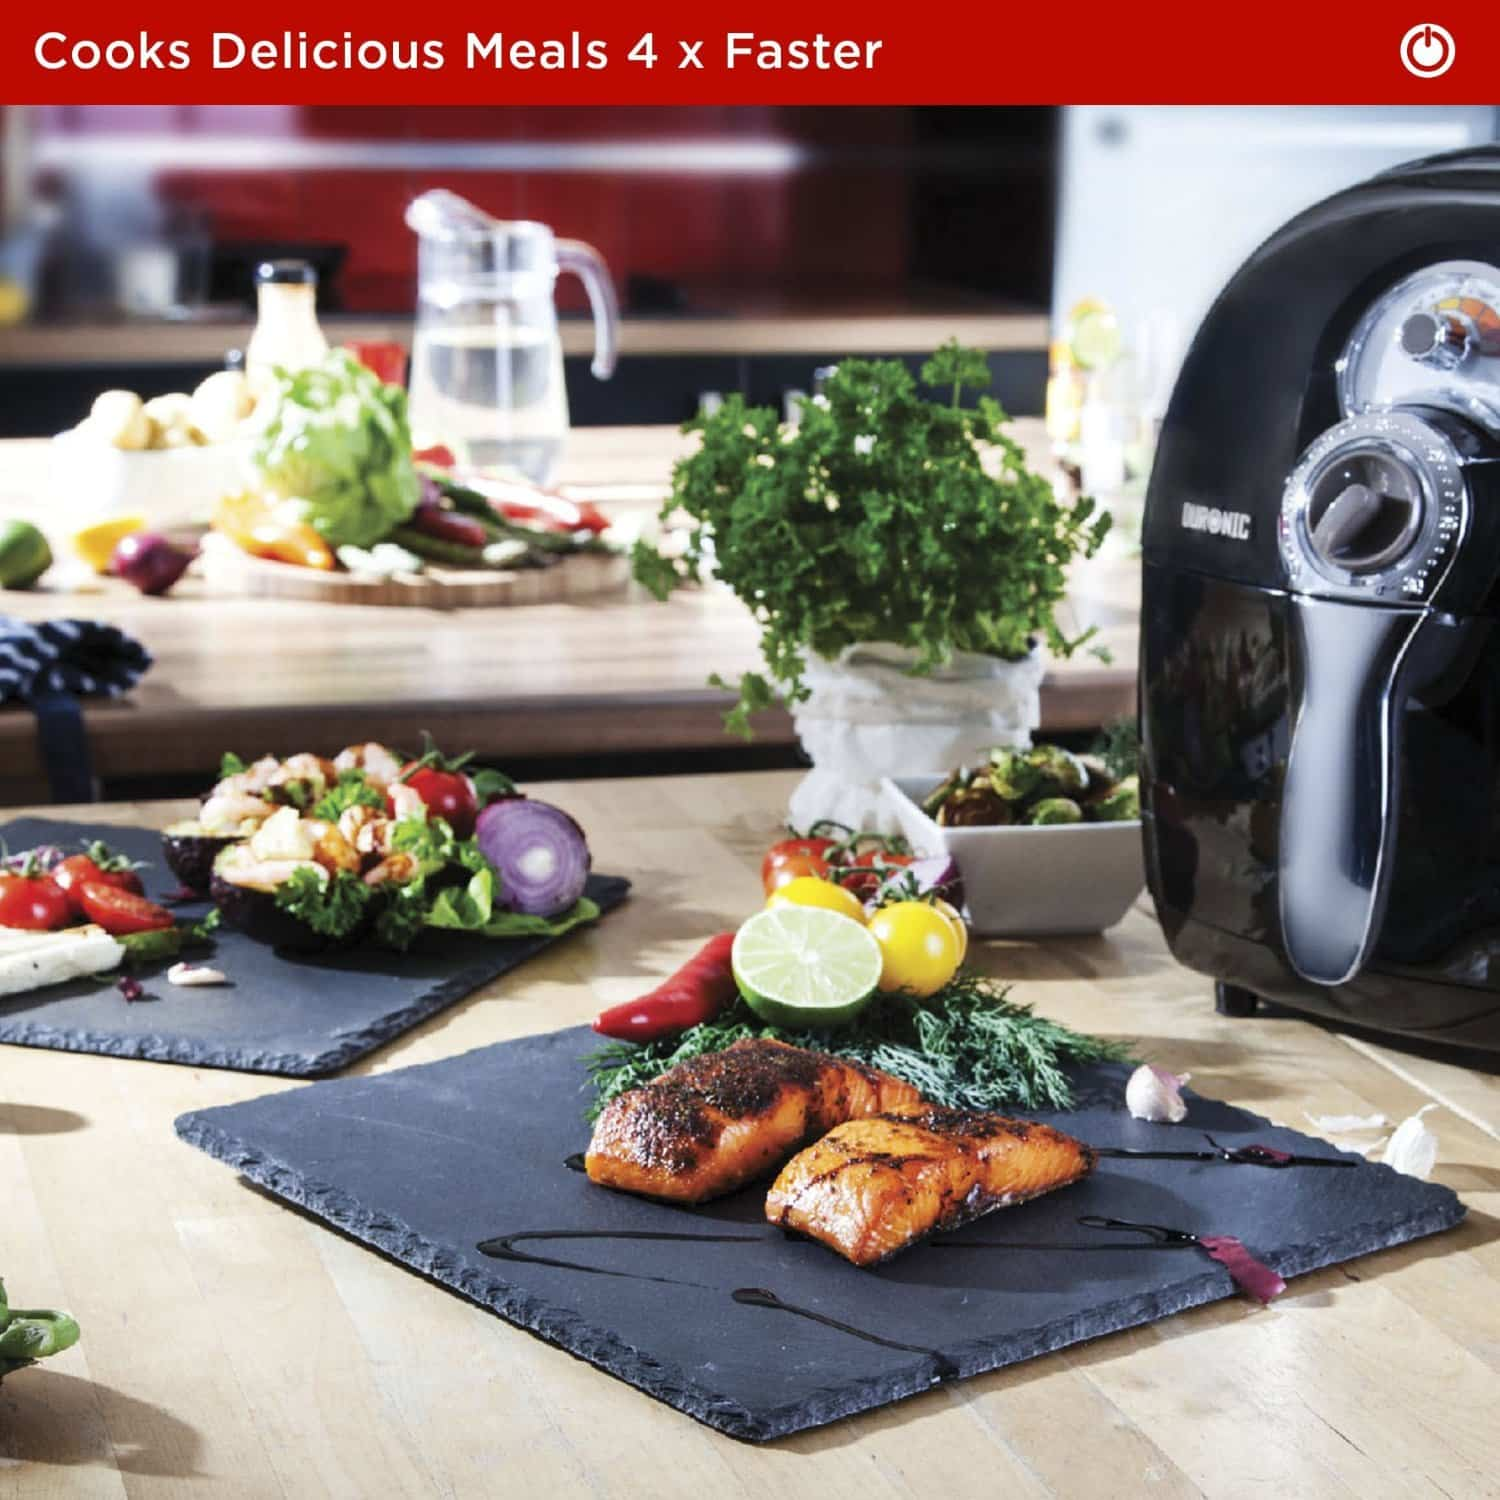 The duronic af1 air fryer cooks food 4 times quicker